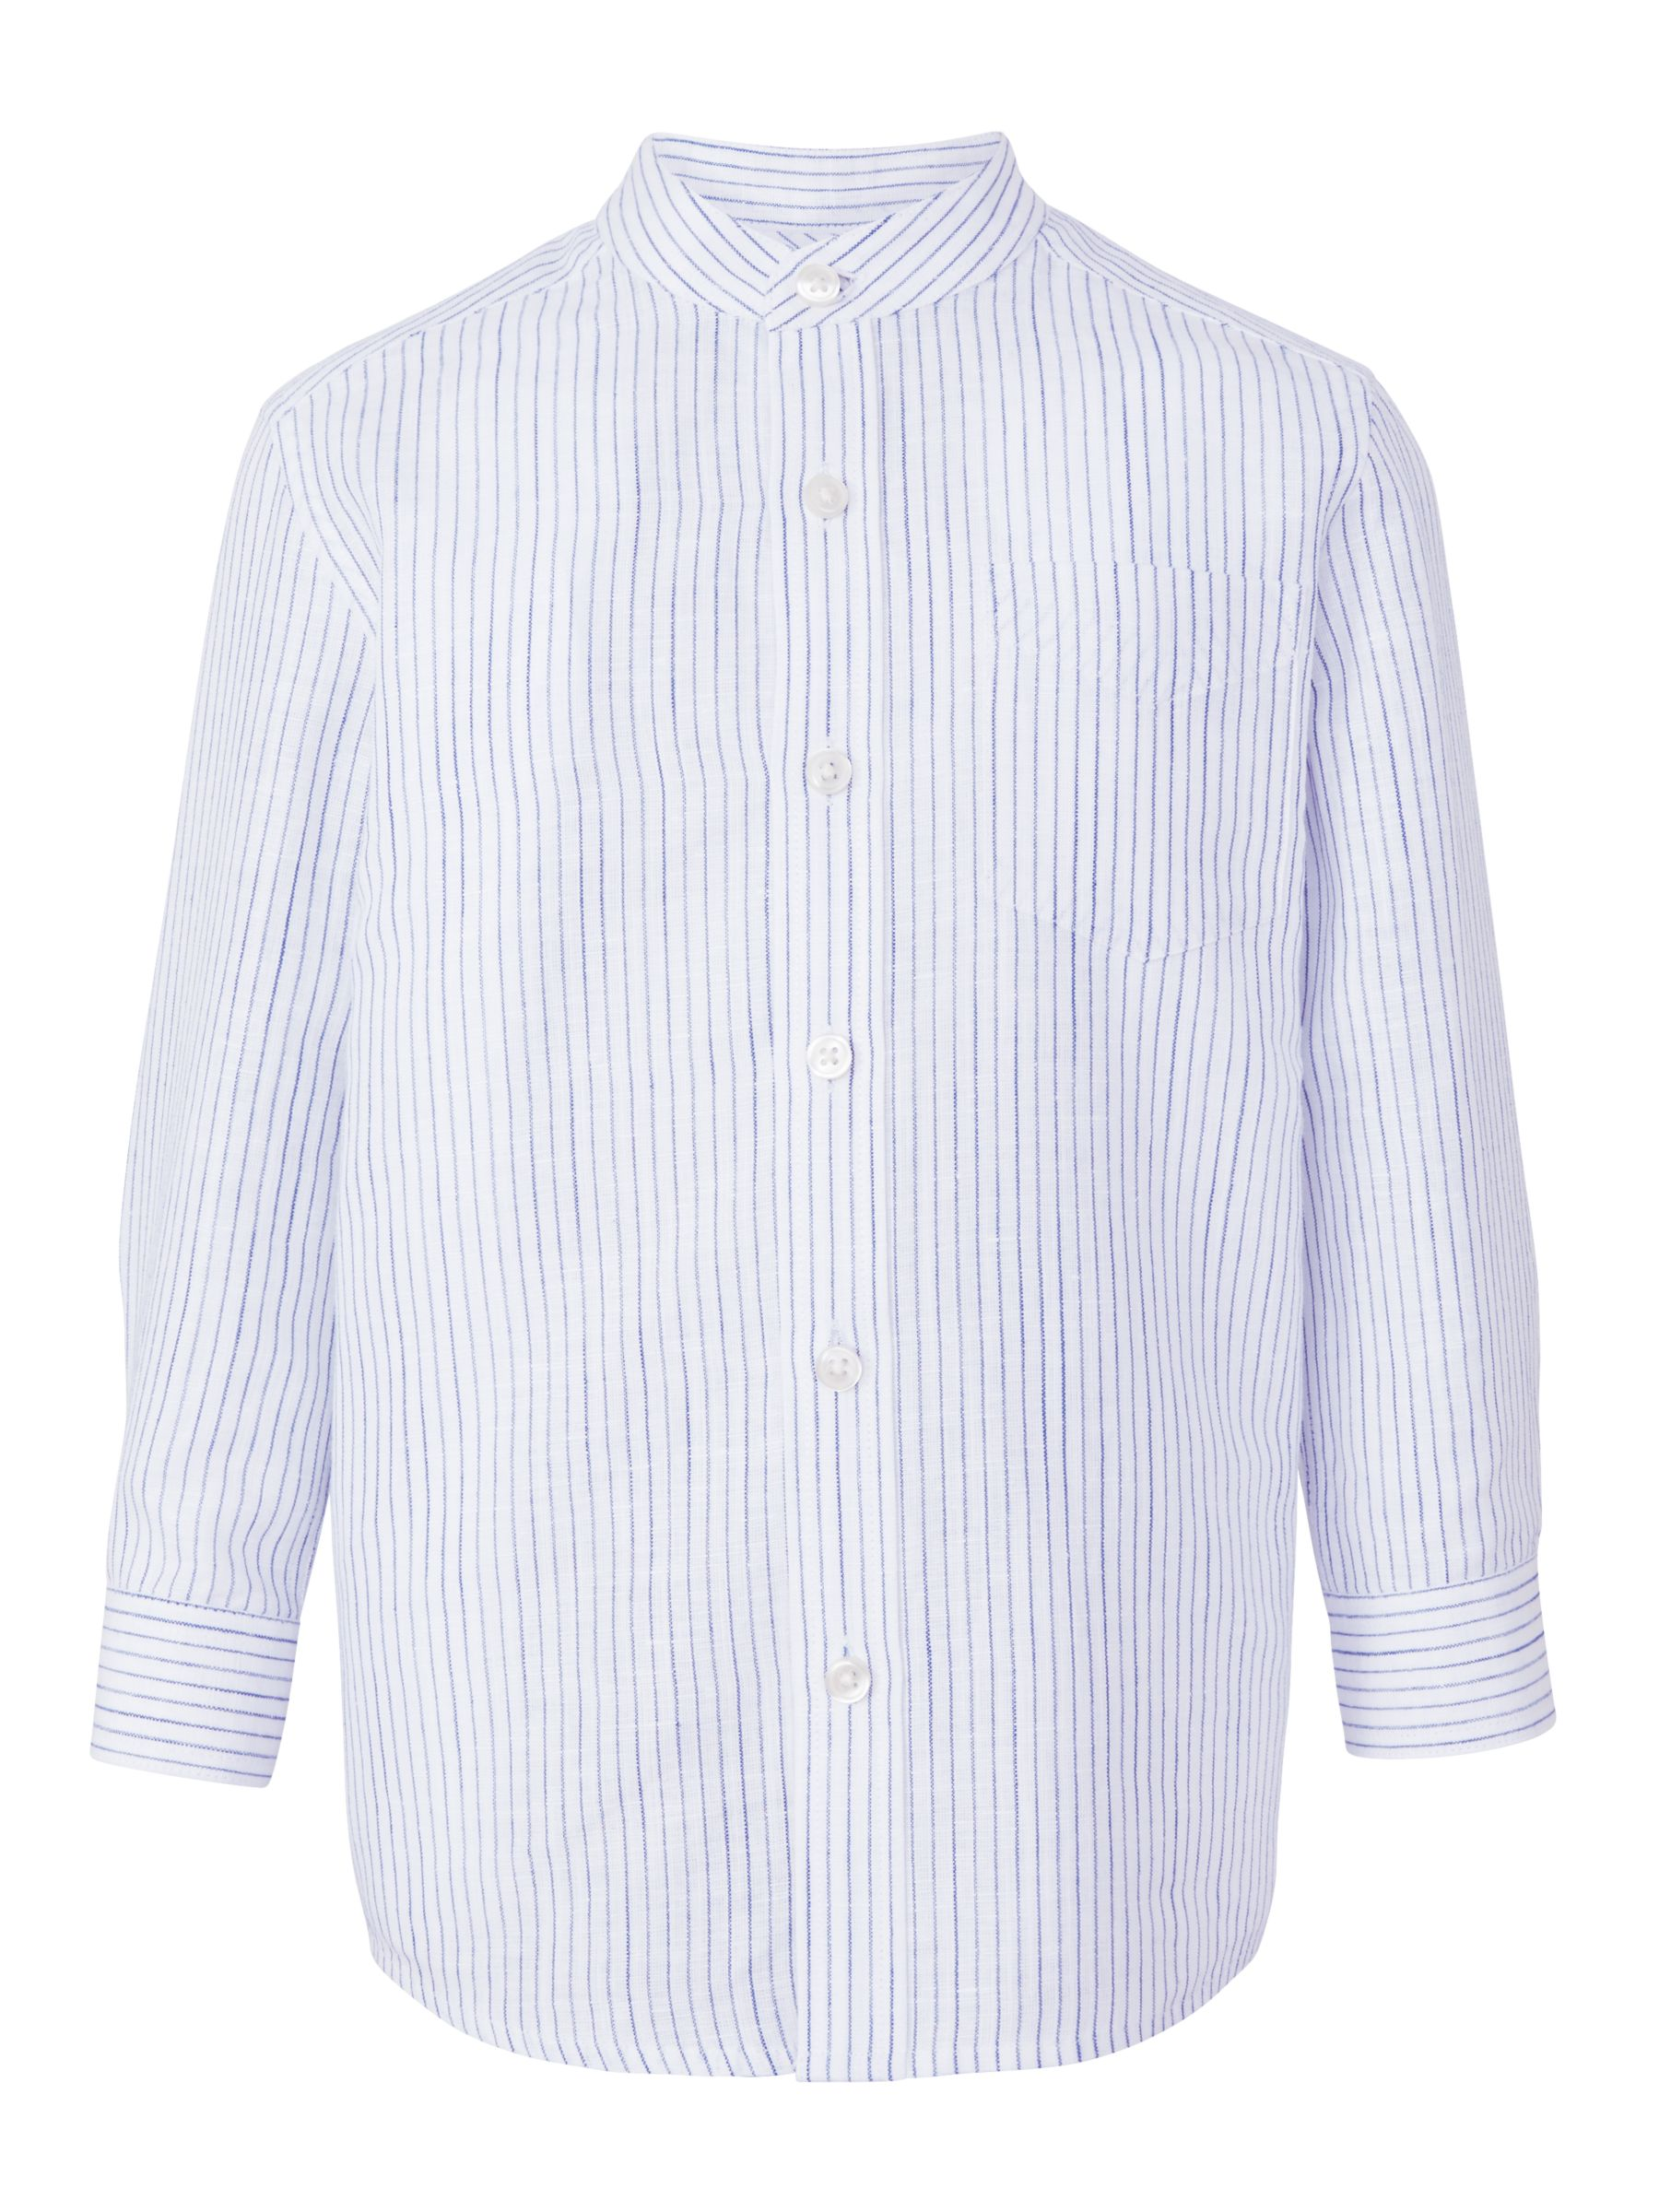 John Lewis Heirloom Collection John Lewis Heirloom Collection Boys' Linen Mix Striped Shirt, Blue/White